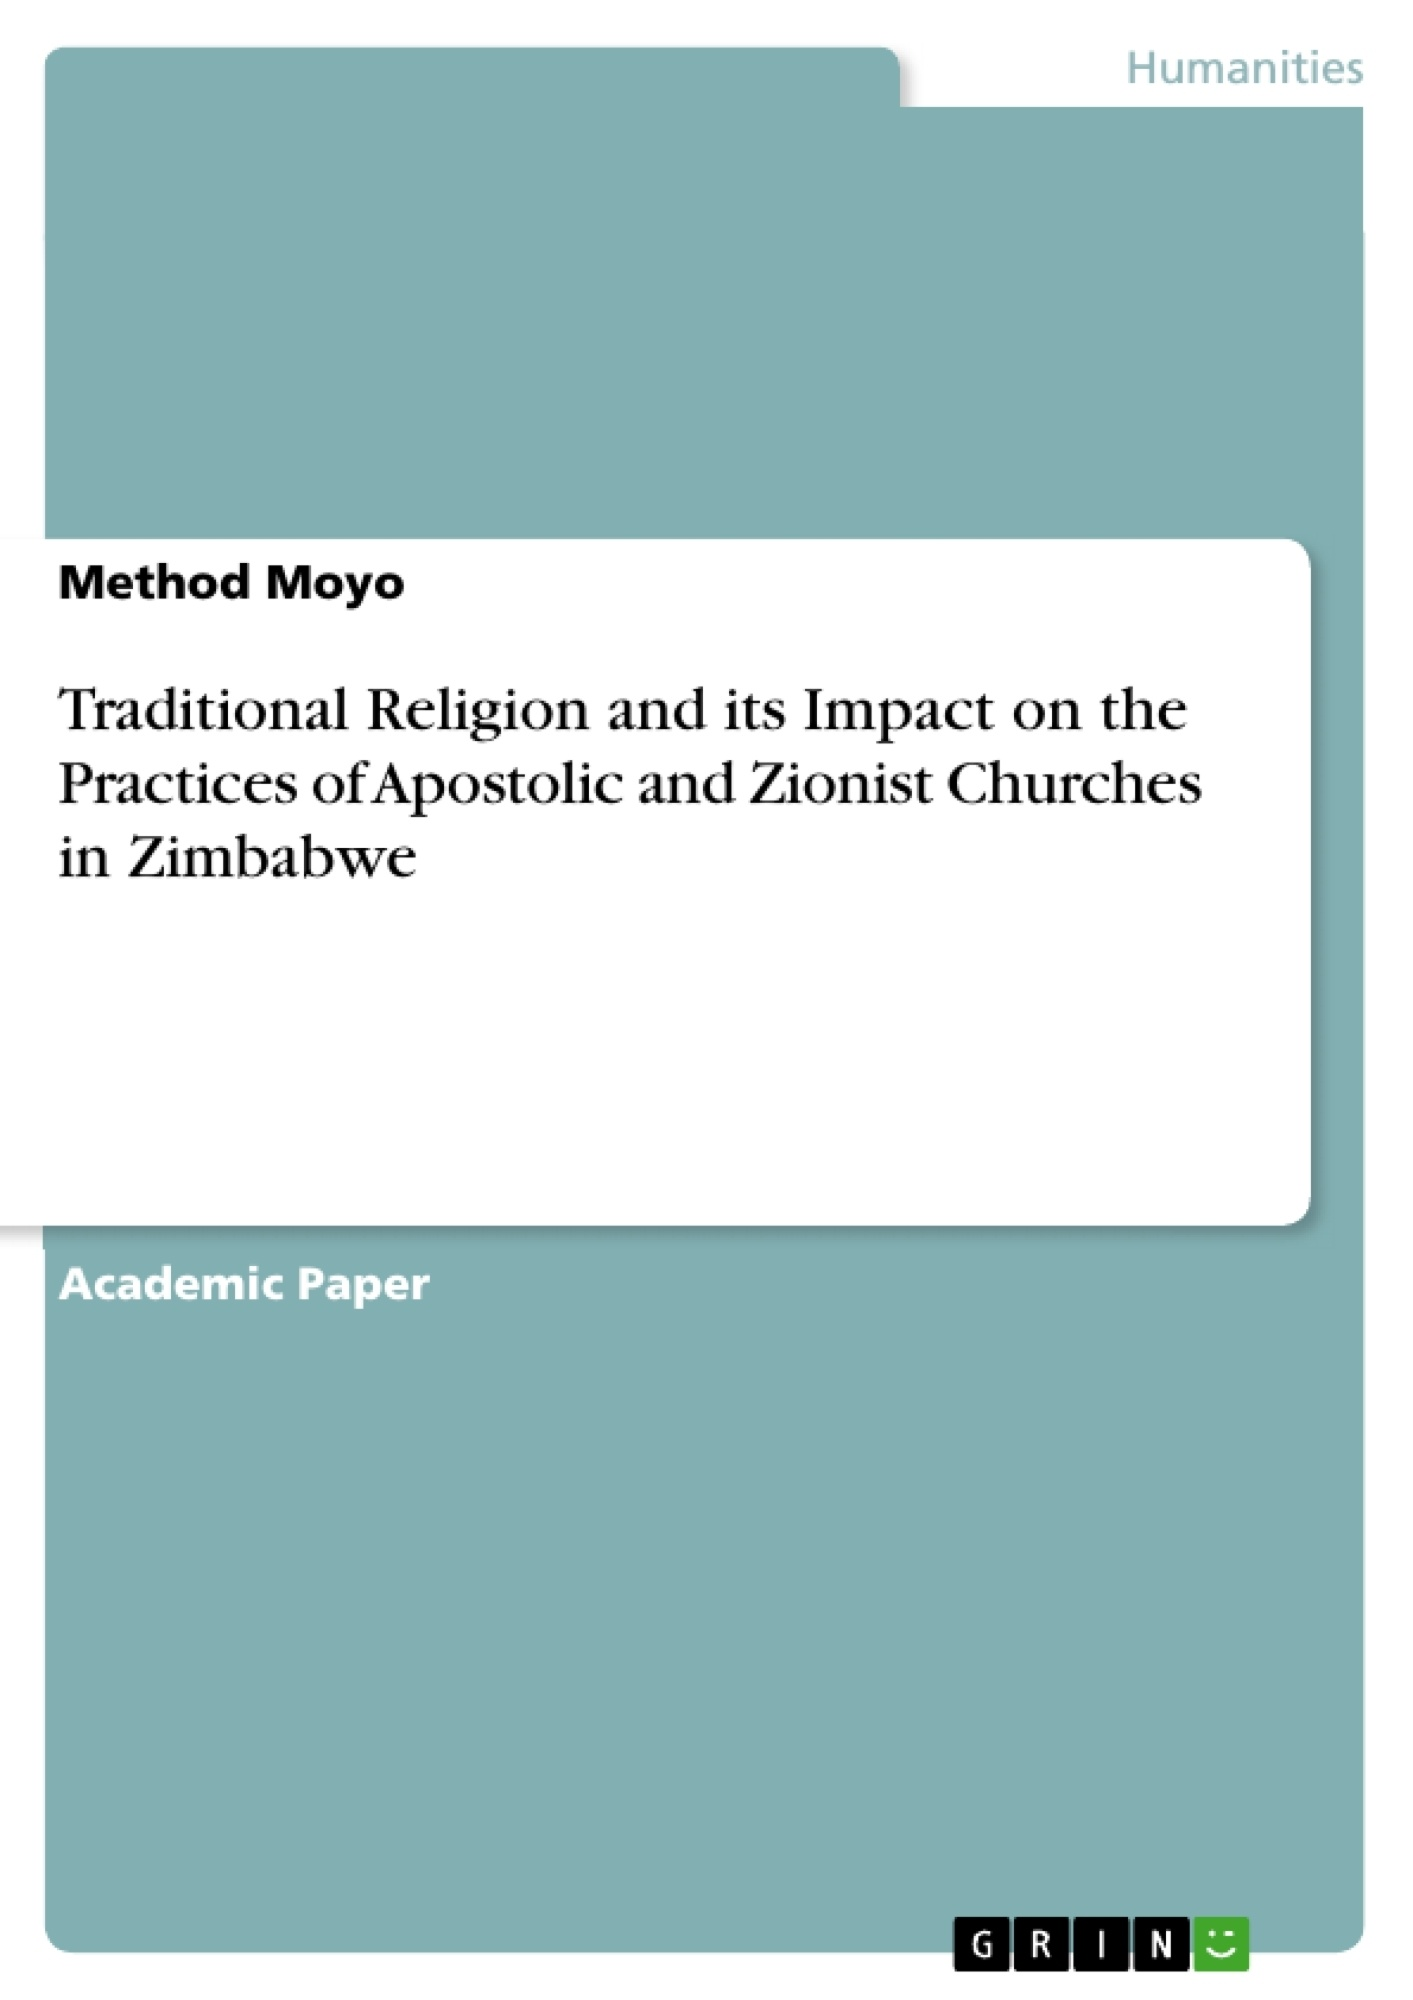 Title: Traditional Religion and its Impact on the Practices of Apostolic and Zionist Churches in Zimbabwe